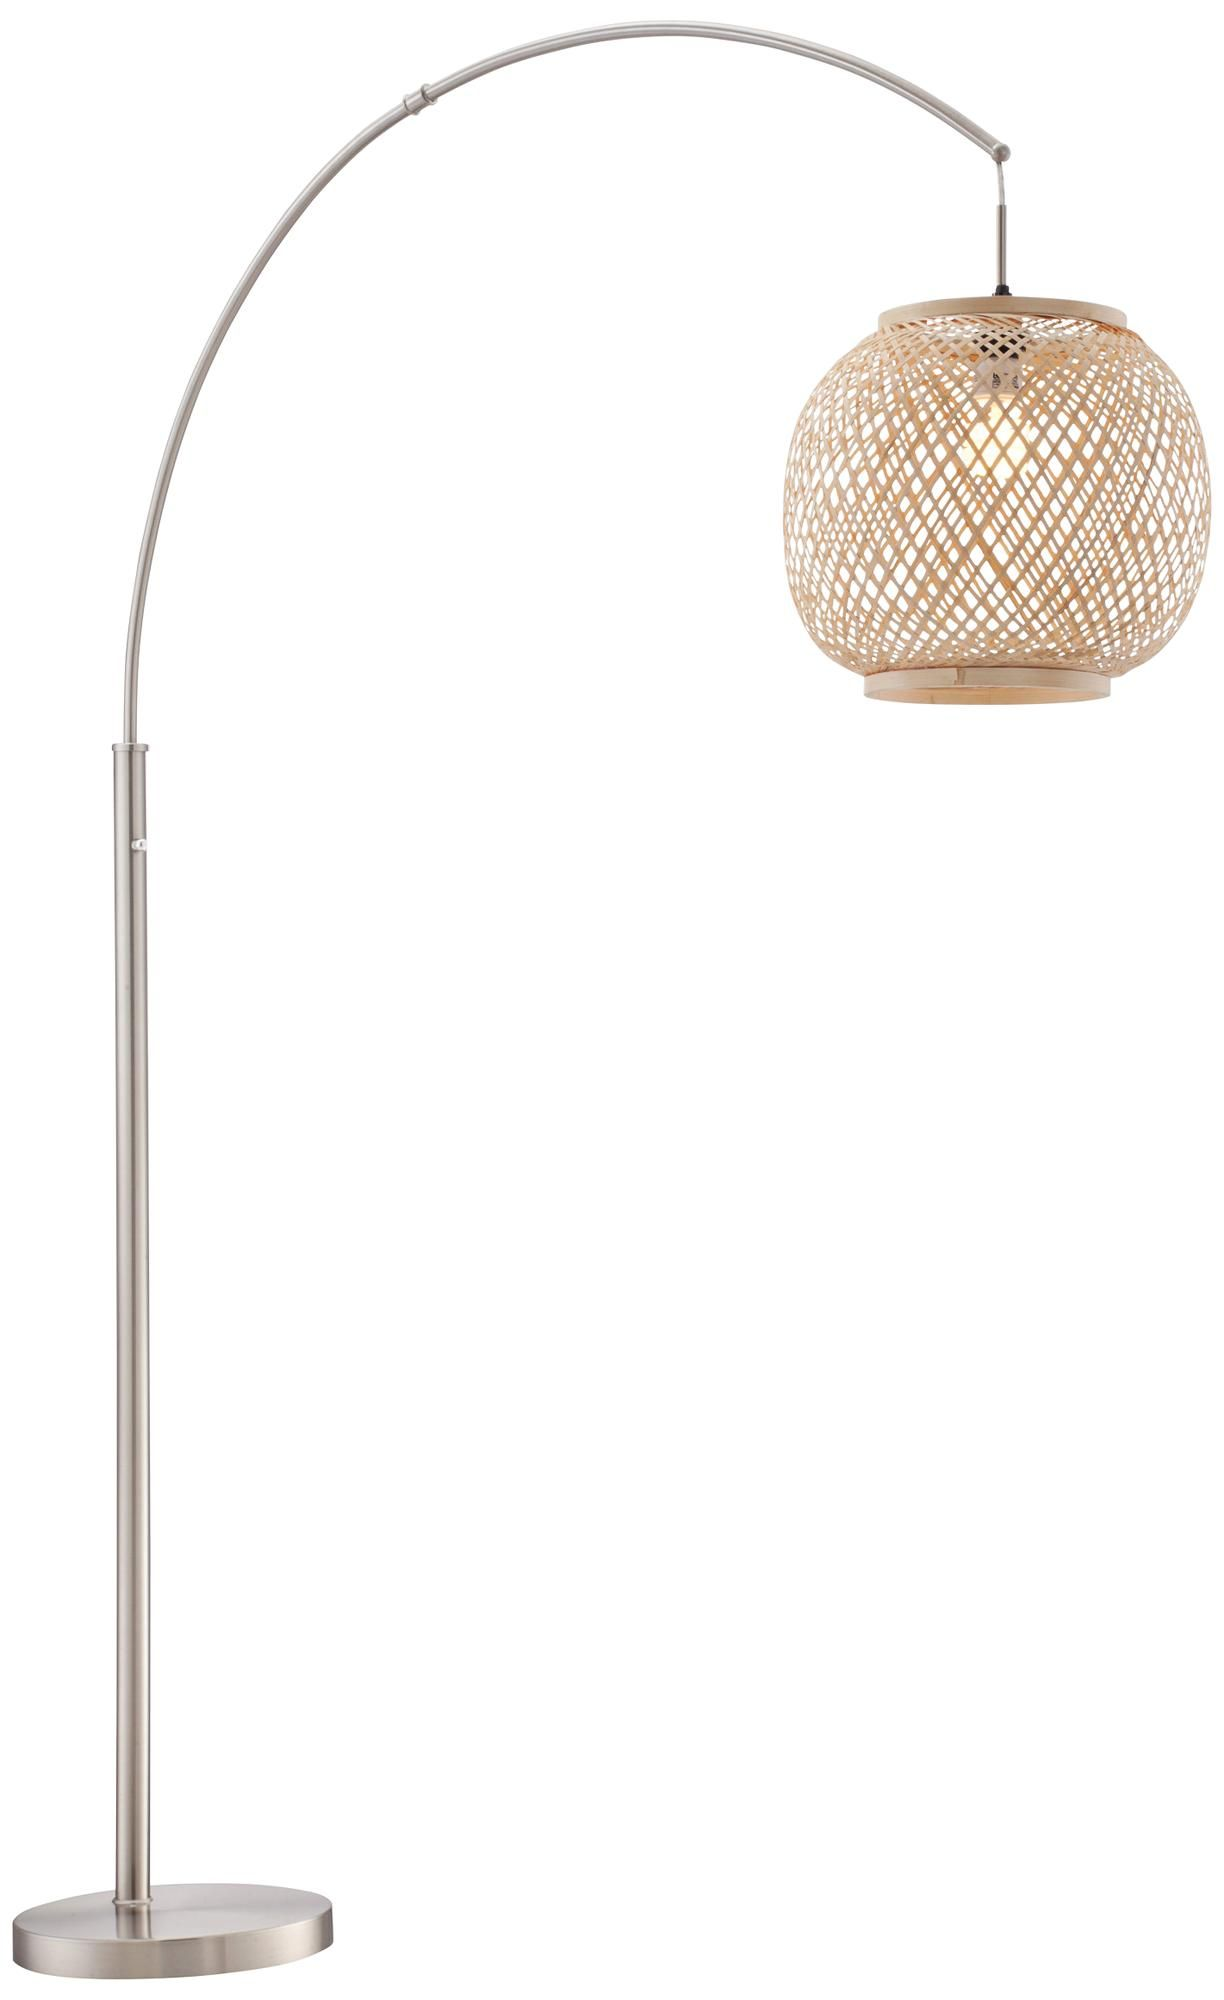 Lite source evangeline rattan globe steel arc floor lamp oneil lite source evangeline rattan globe steel arc floor lamp aloadofball Gallery